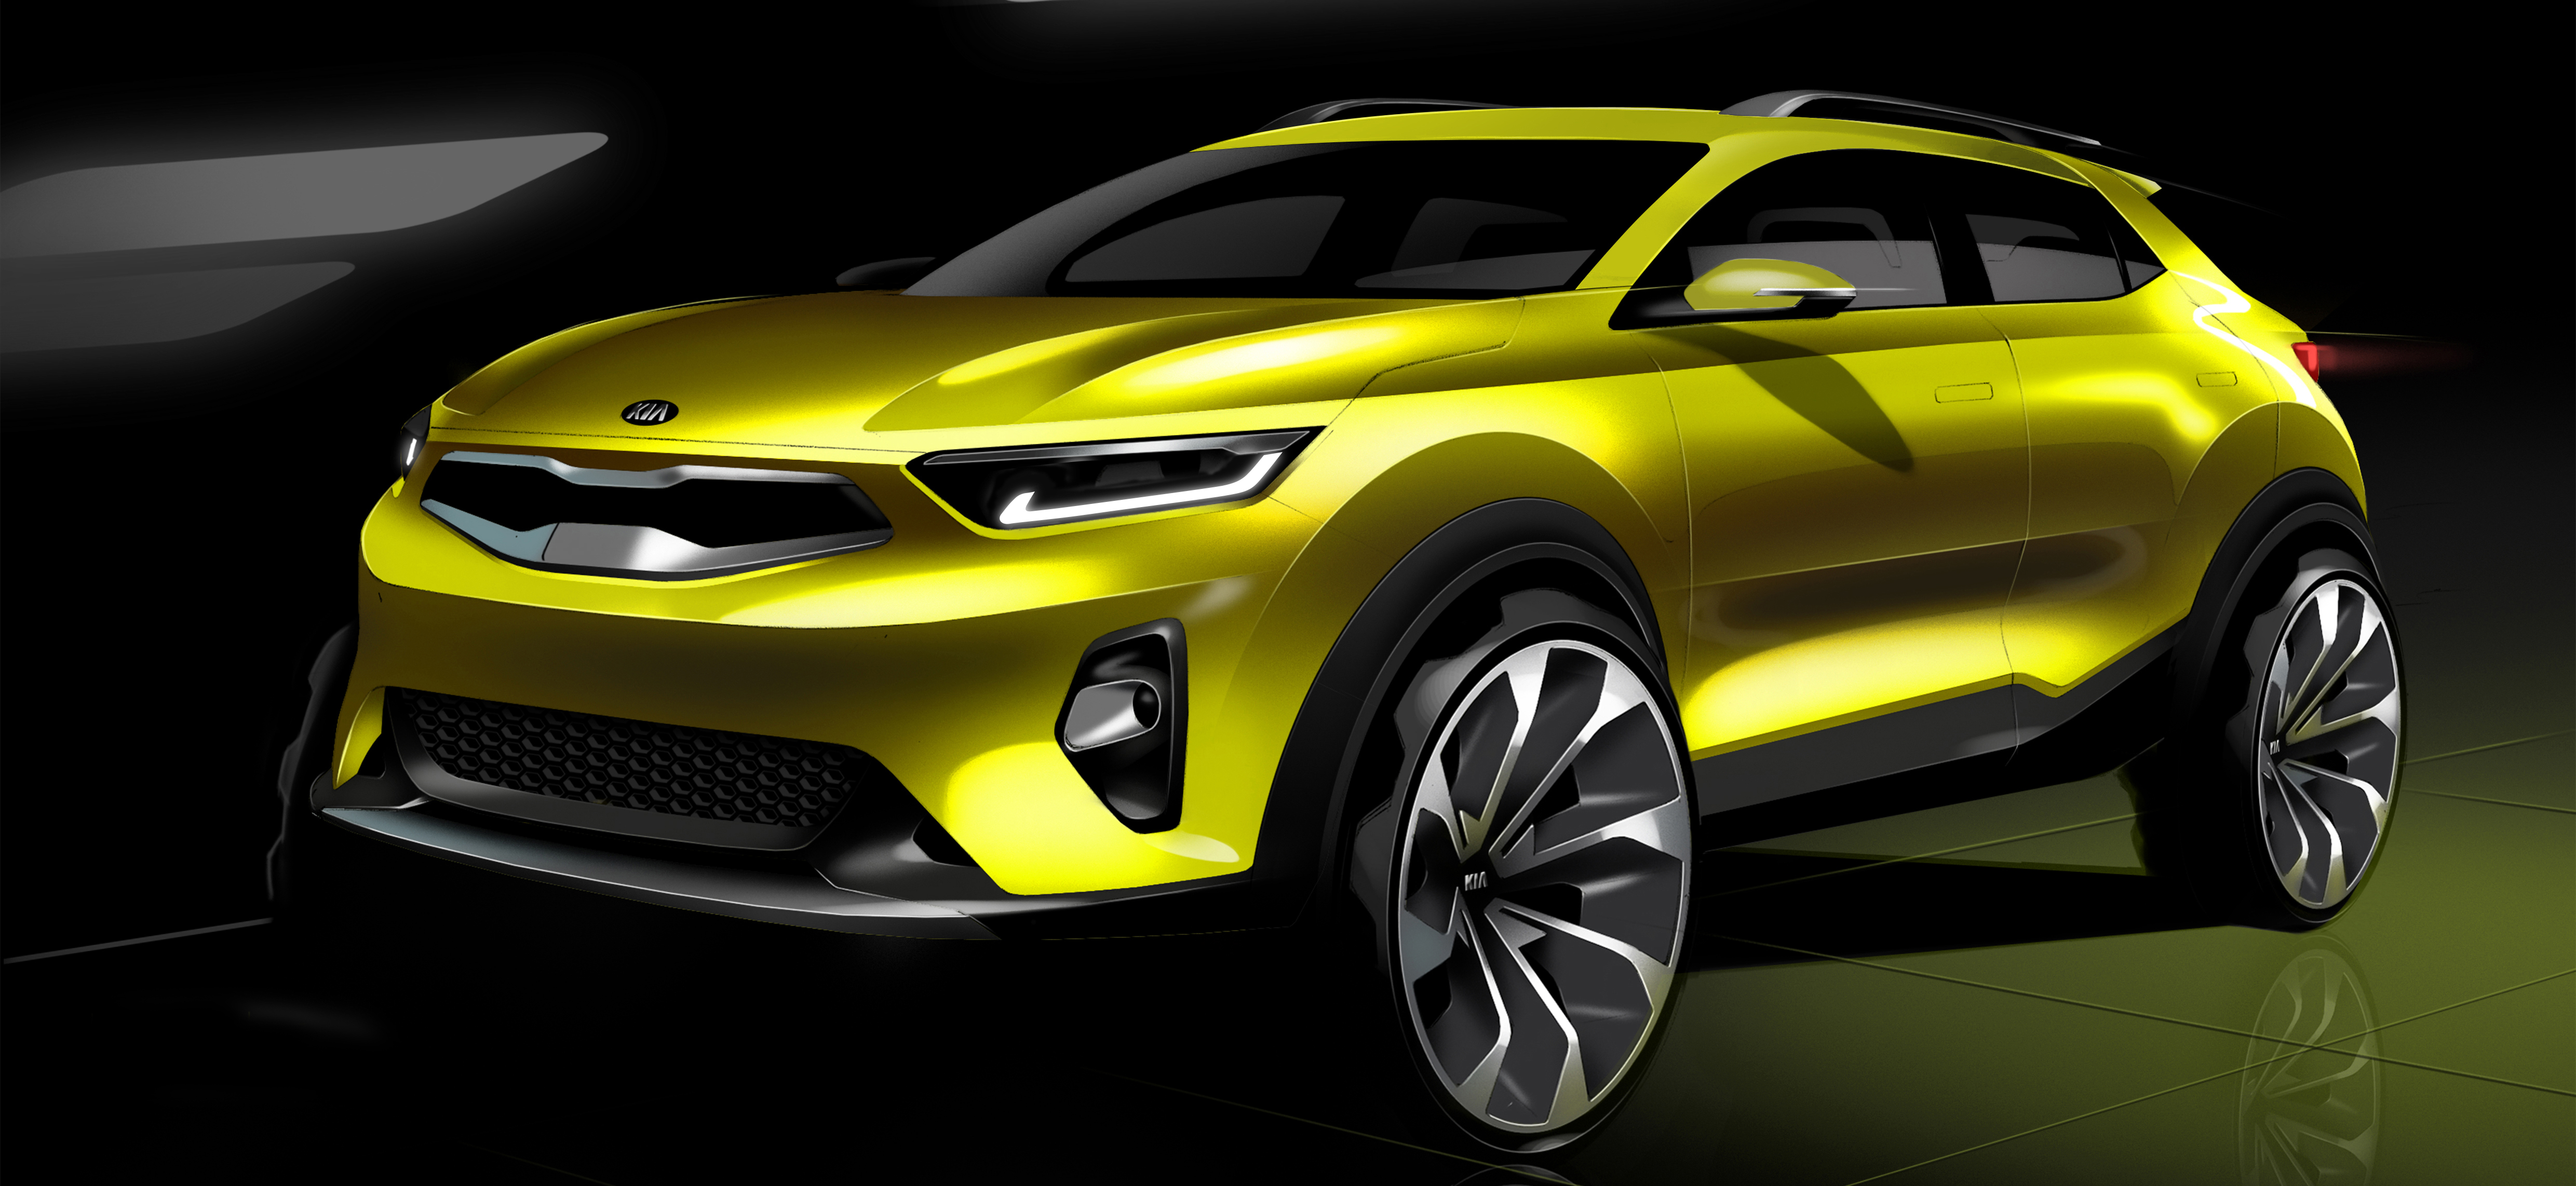 Introducing the world's newest Kia, the 2018 Stonic